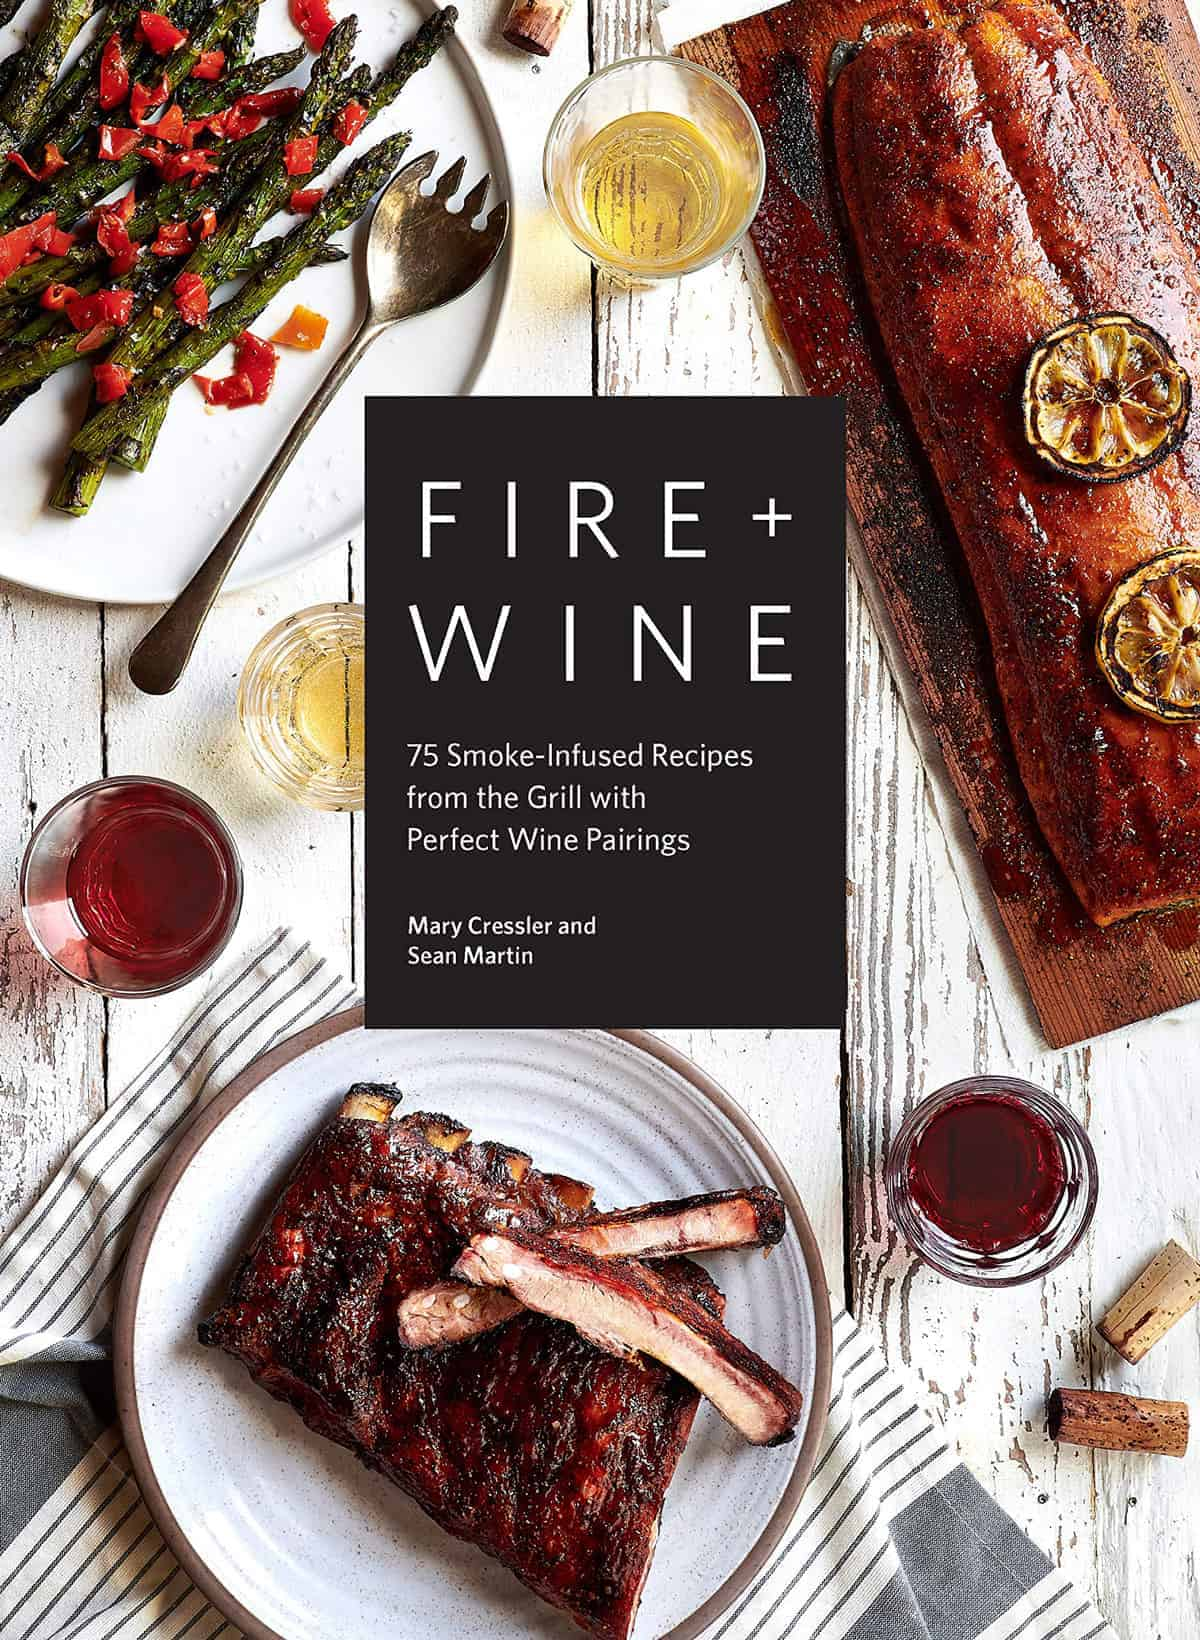 Fire and Wine Cookbook cover photo featuring cedar plank salmon, ribs, and asparagus with spicy peppers.